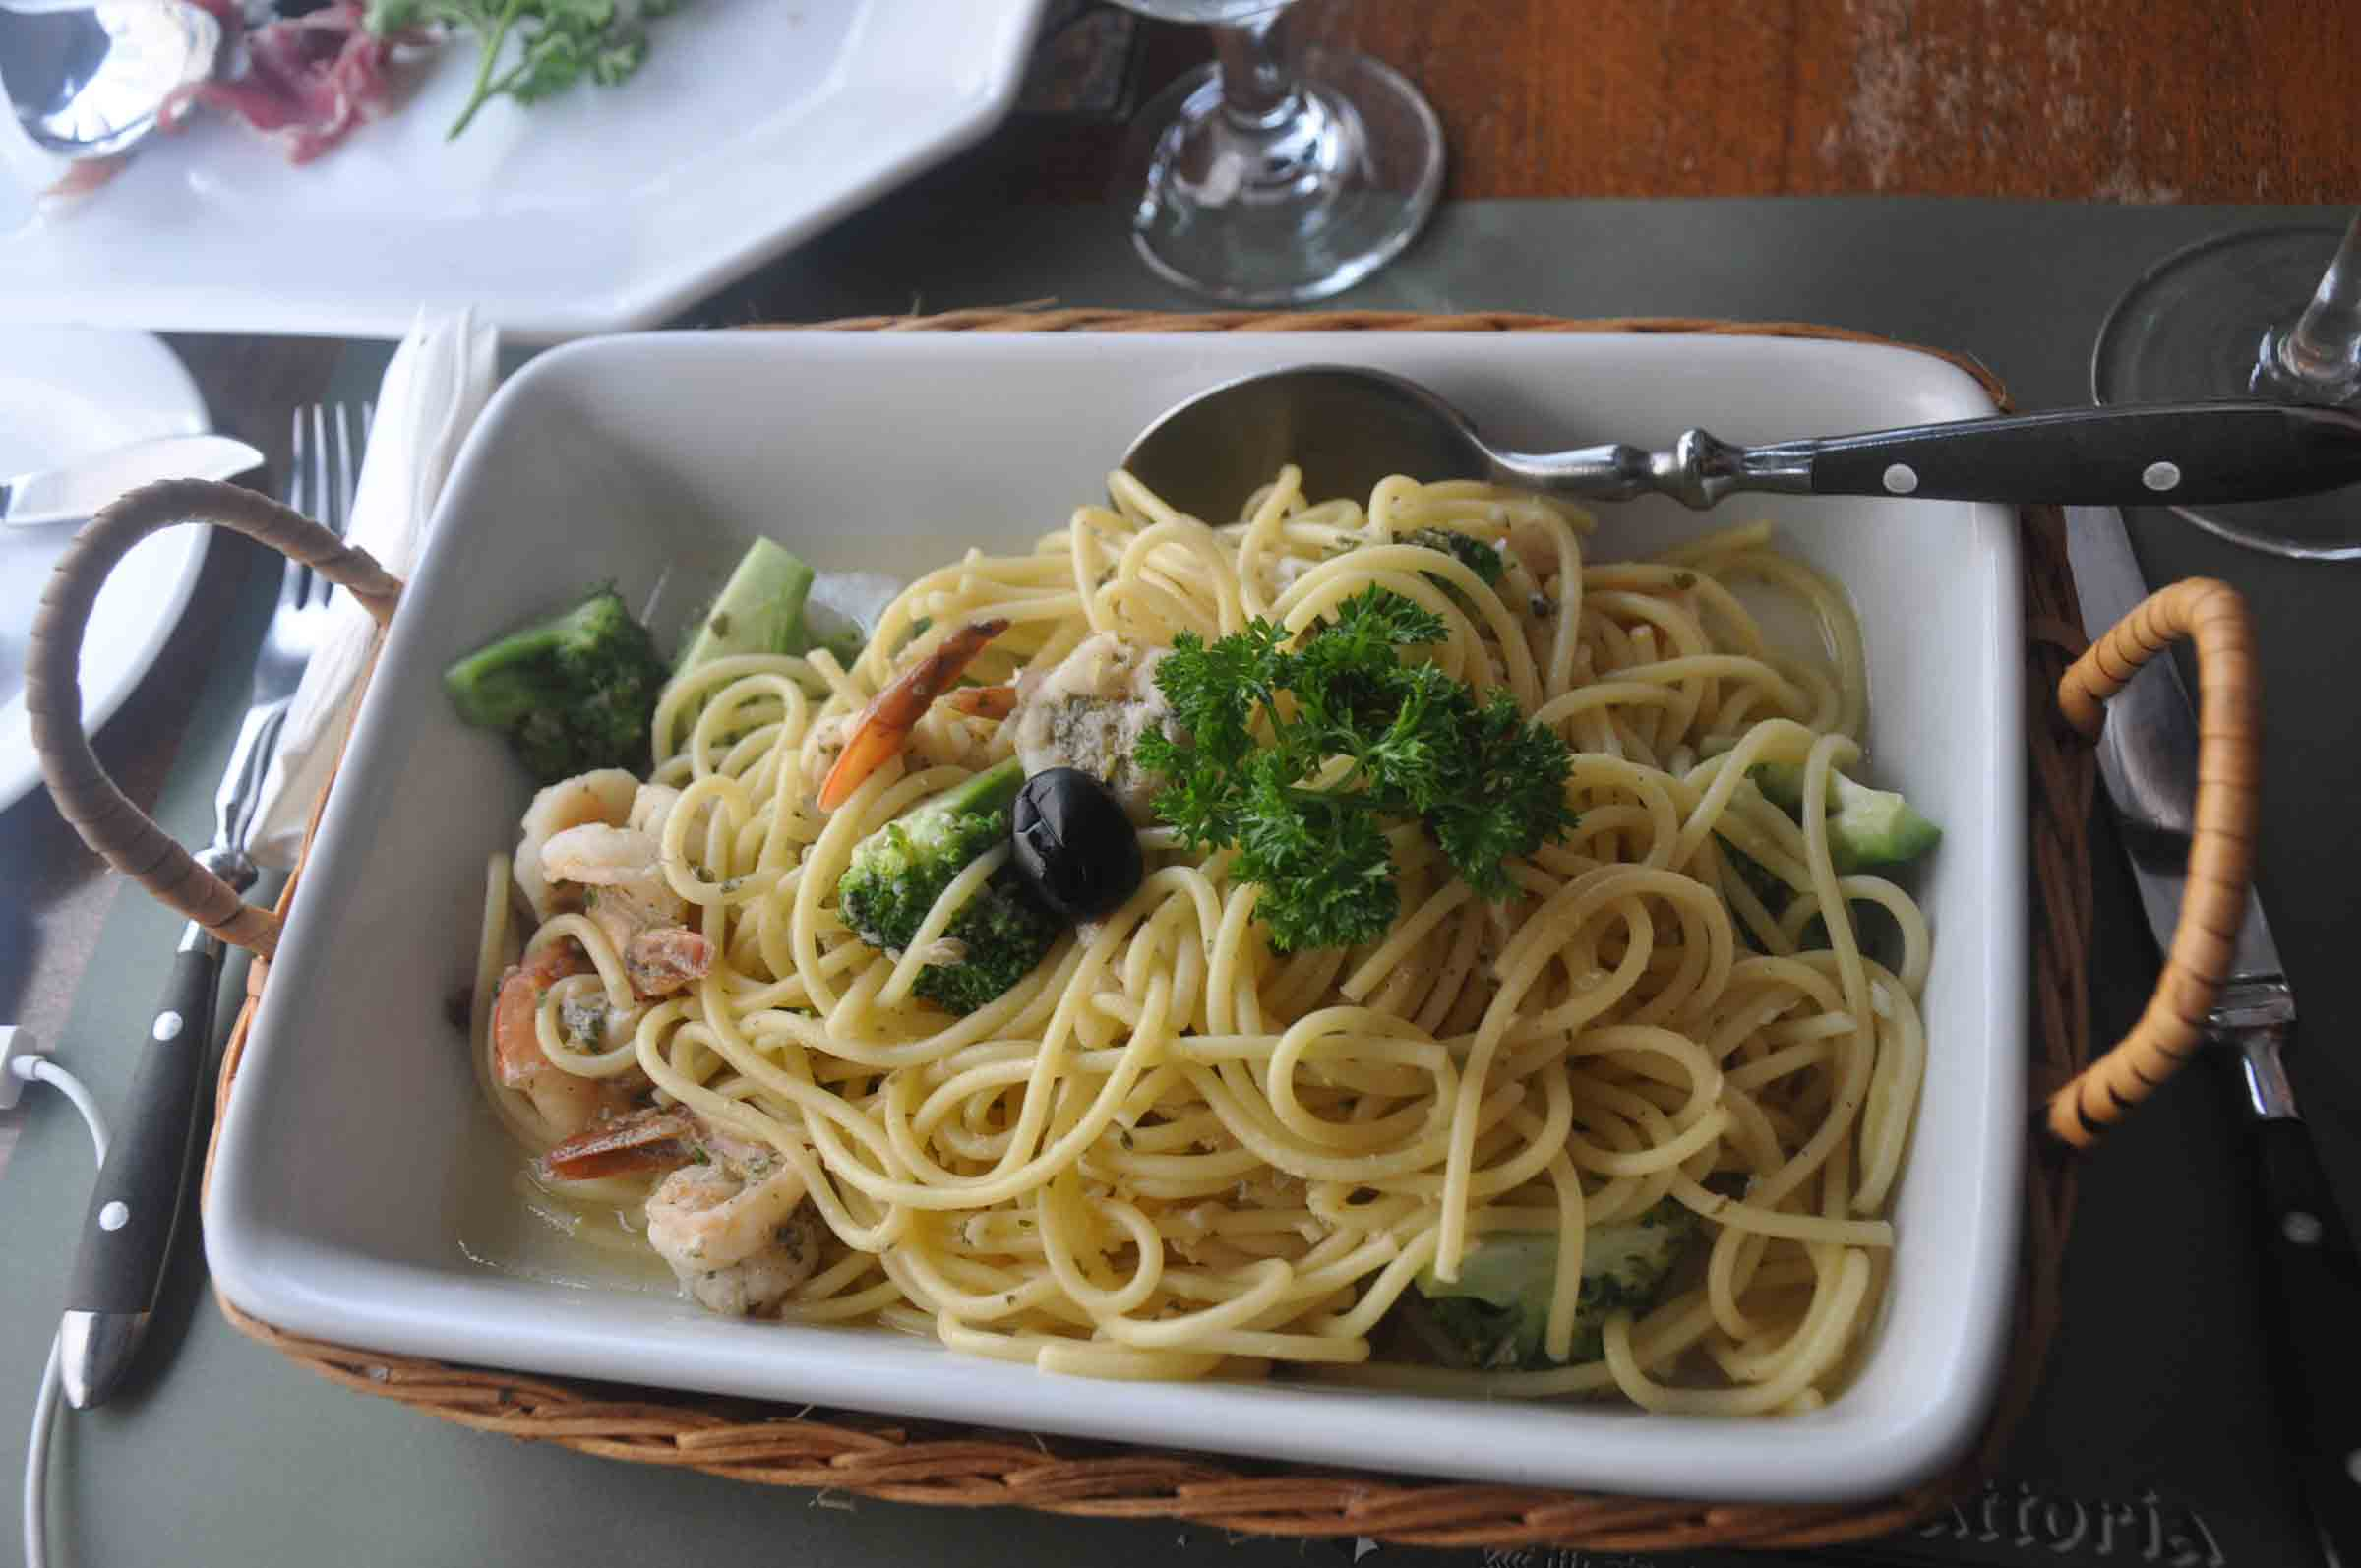 Antica Trattoria Da Isa spaghetti with broccoli, prawn and florets